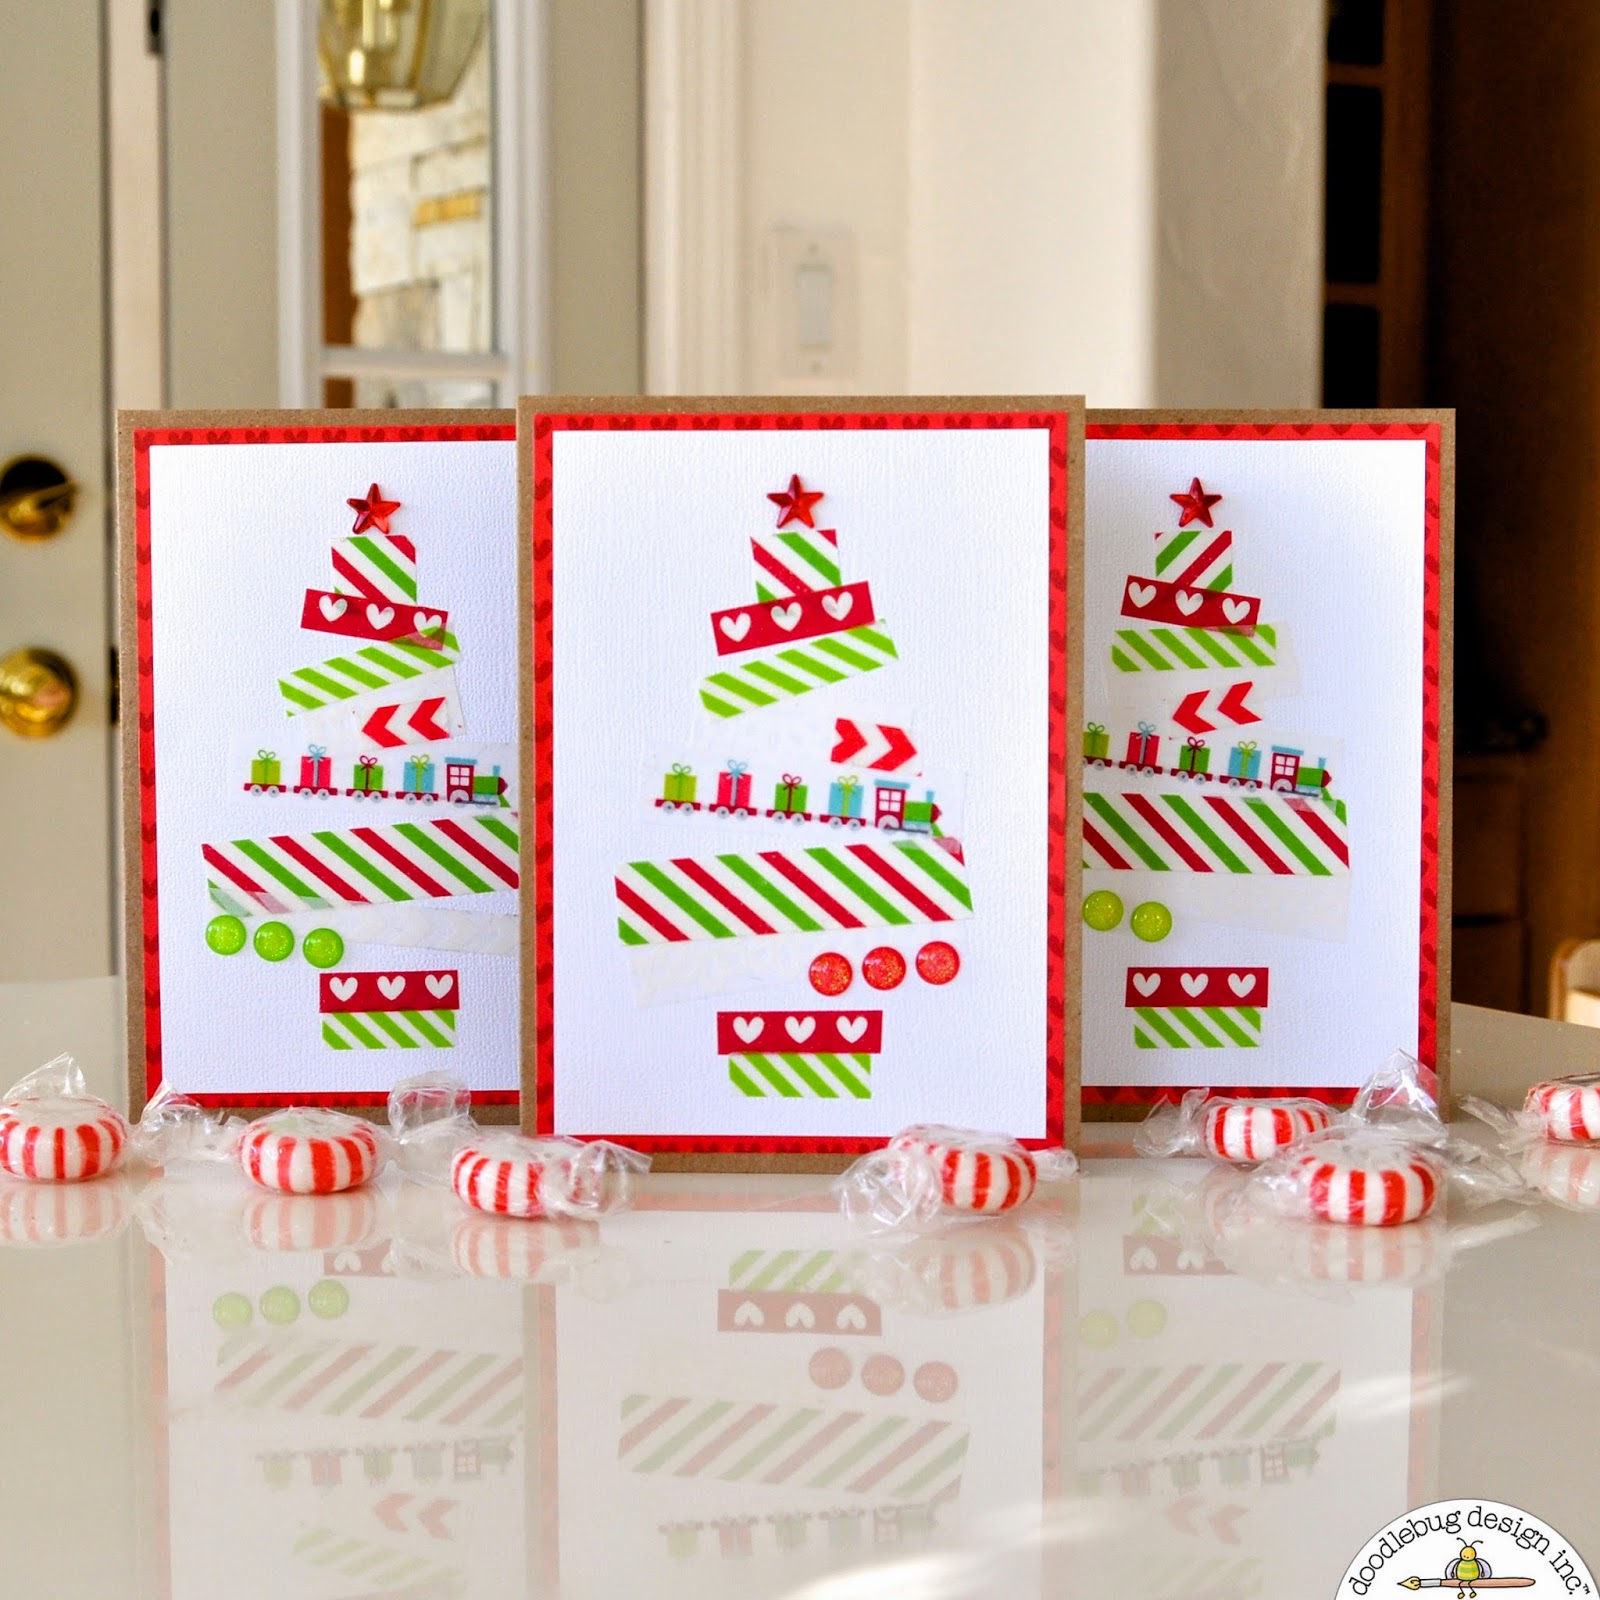 Doodlebug Design Inc Blog: Quick & Easy Washi Tape Christmas Tree ...